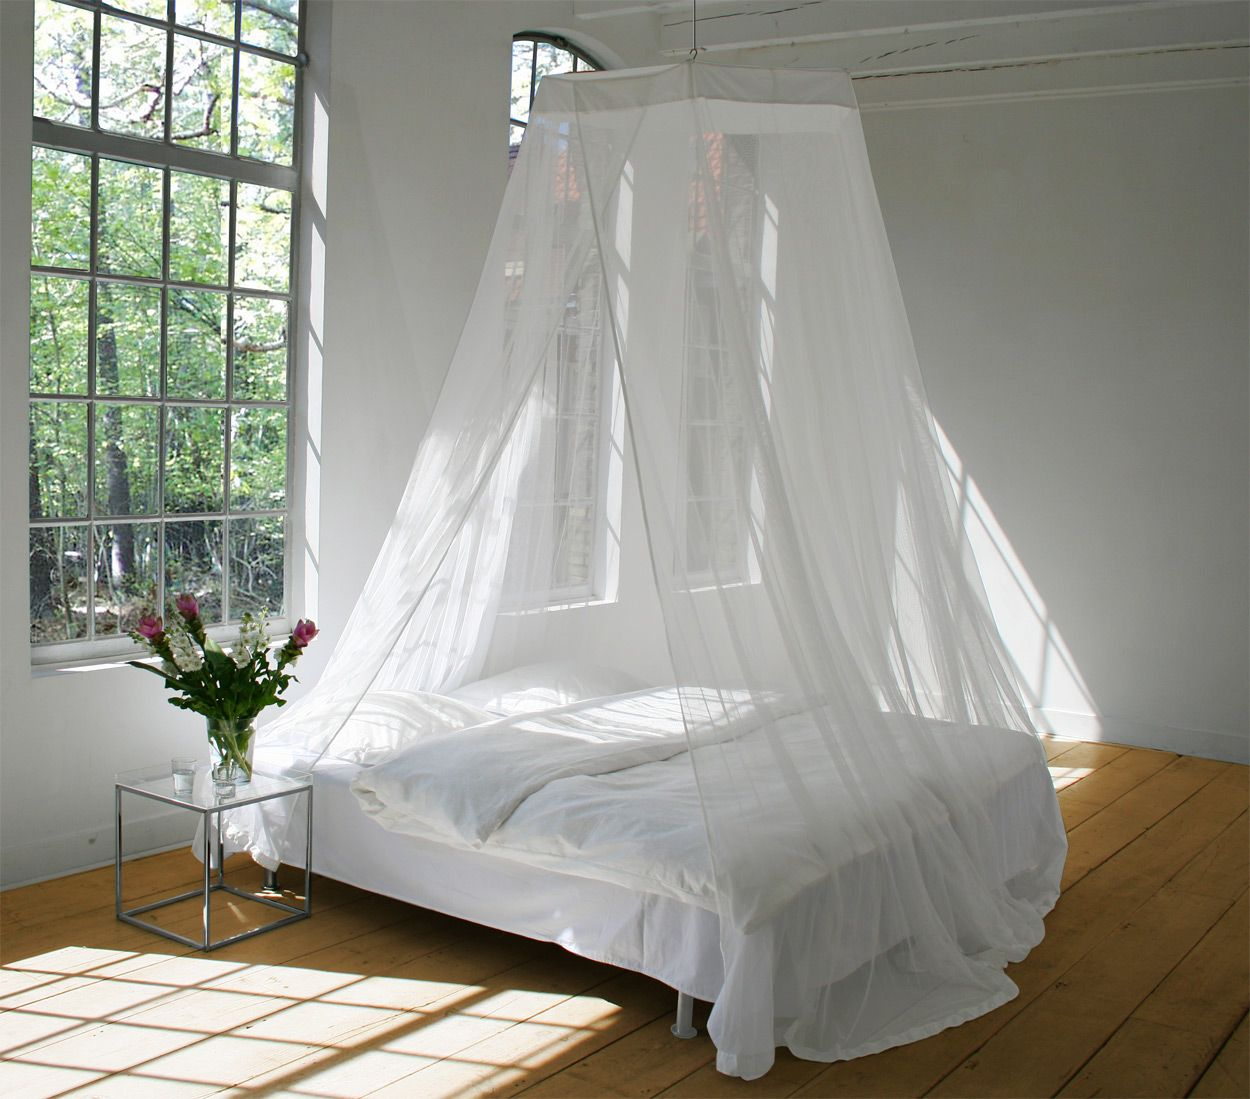 Mosquito Net Classic Favorite Places Spaces